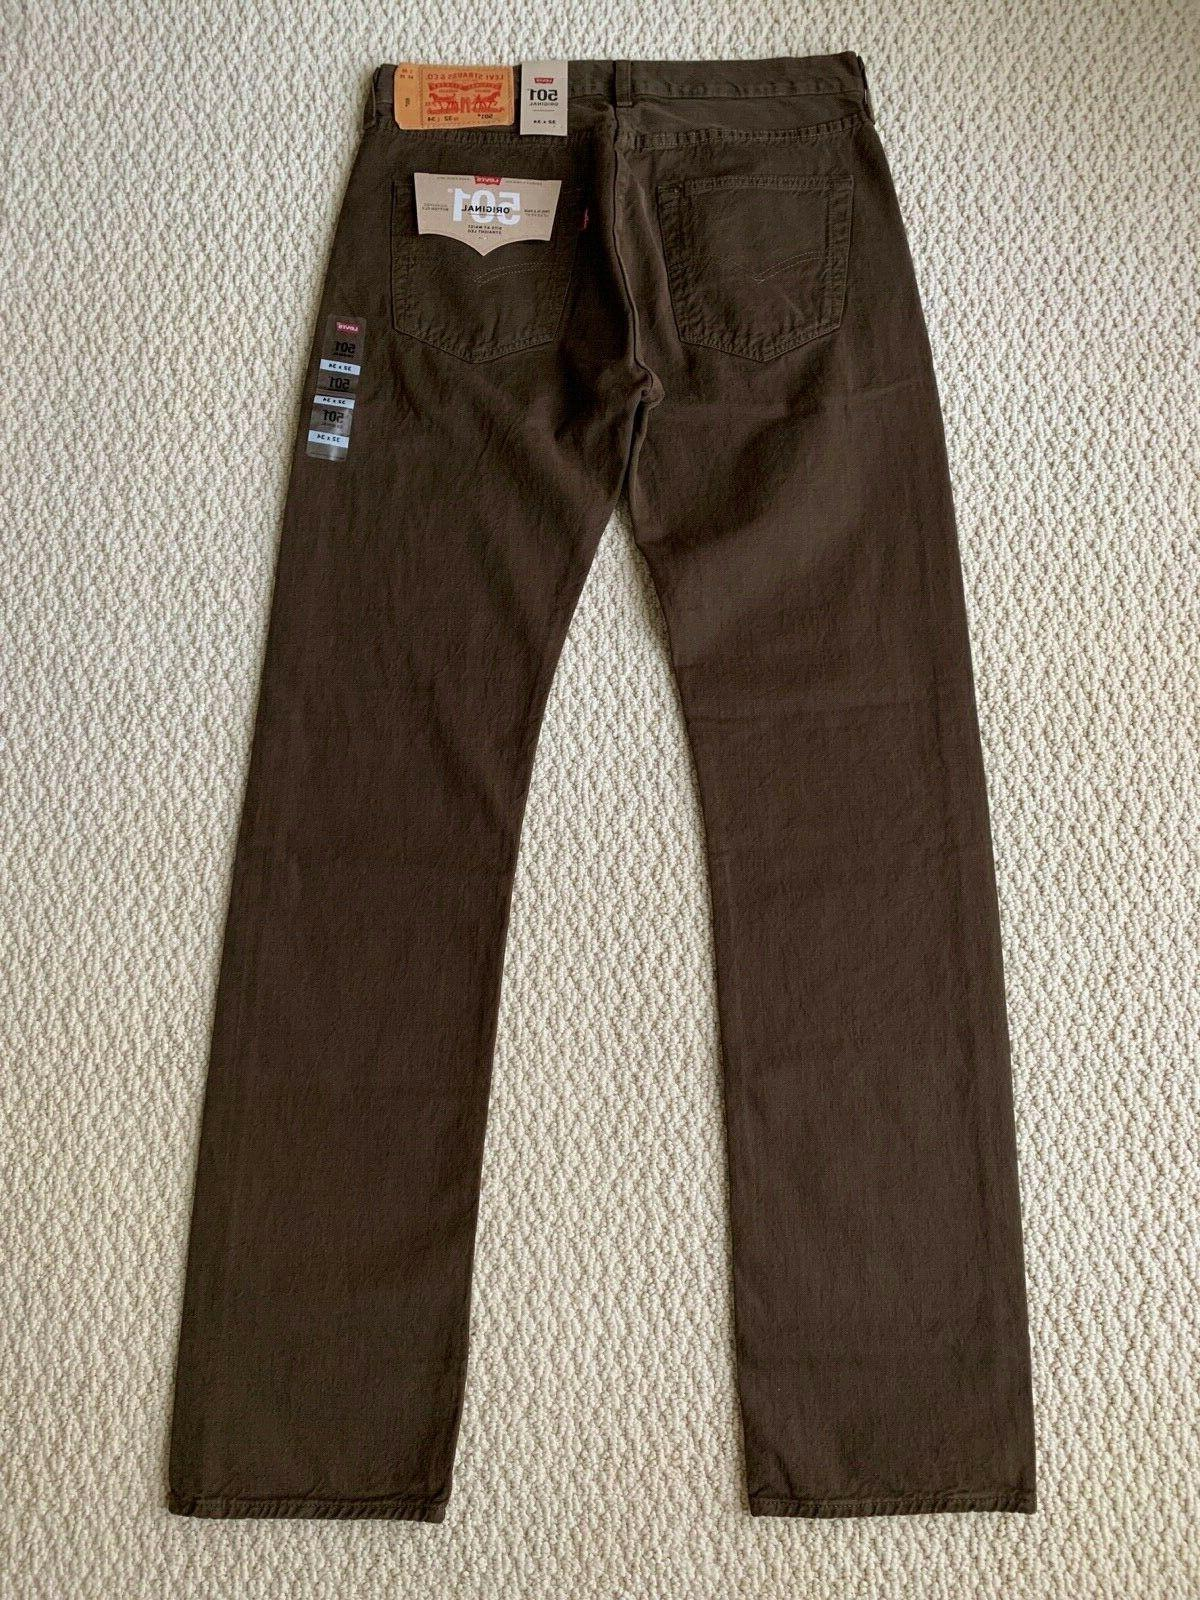 NWT Men's Levi's Original Denim Straight Leg Jeans ALL SIZES